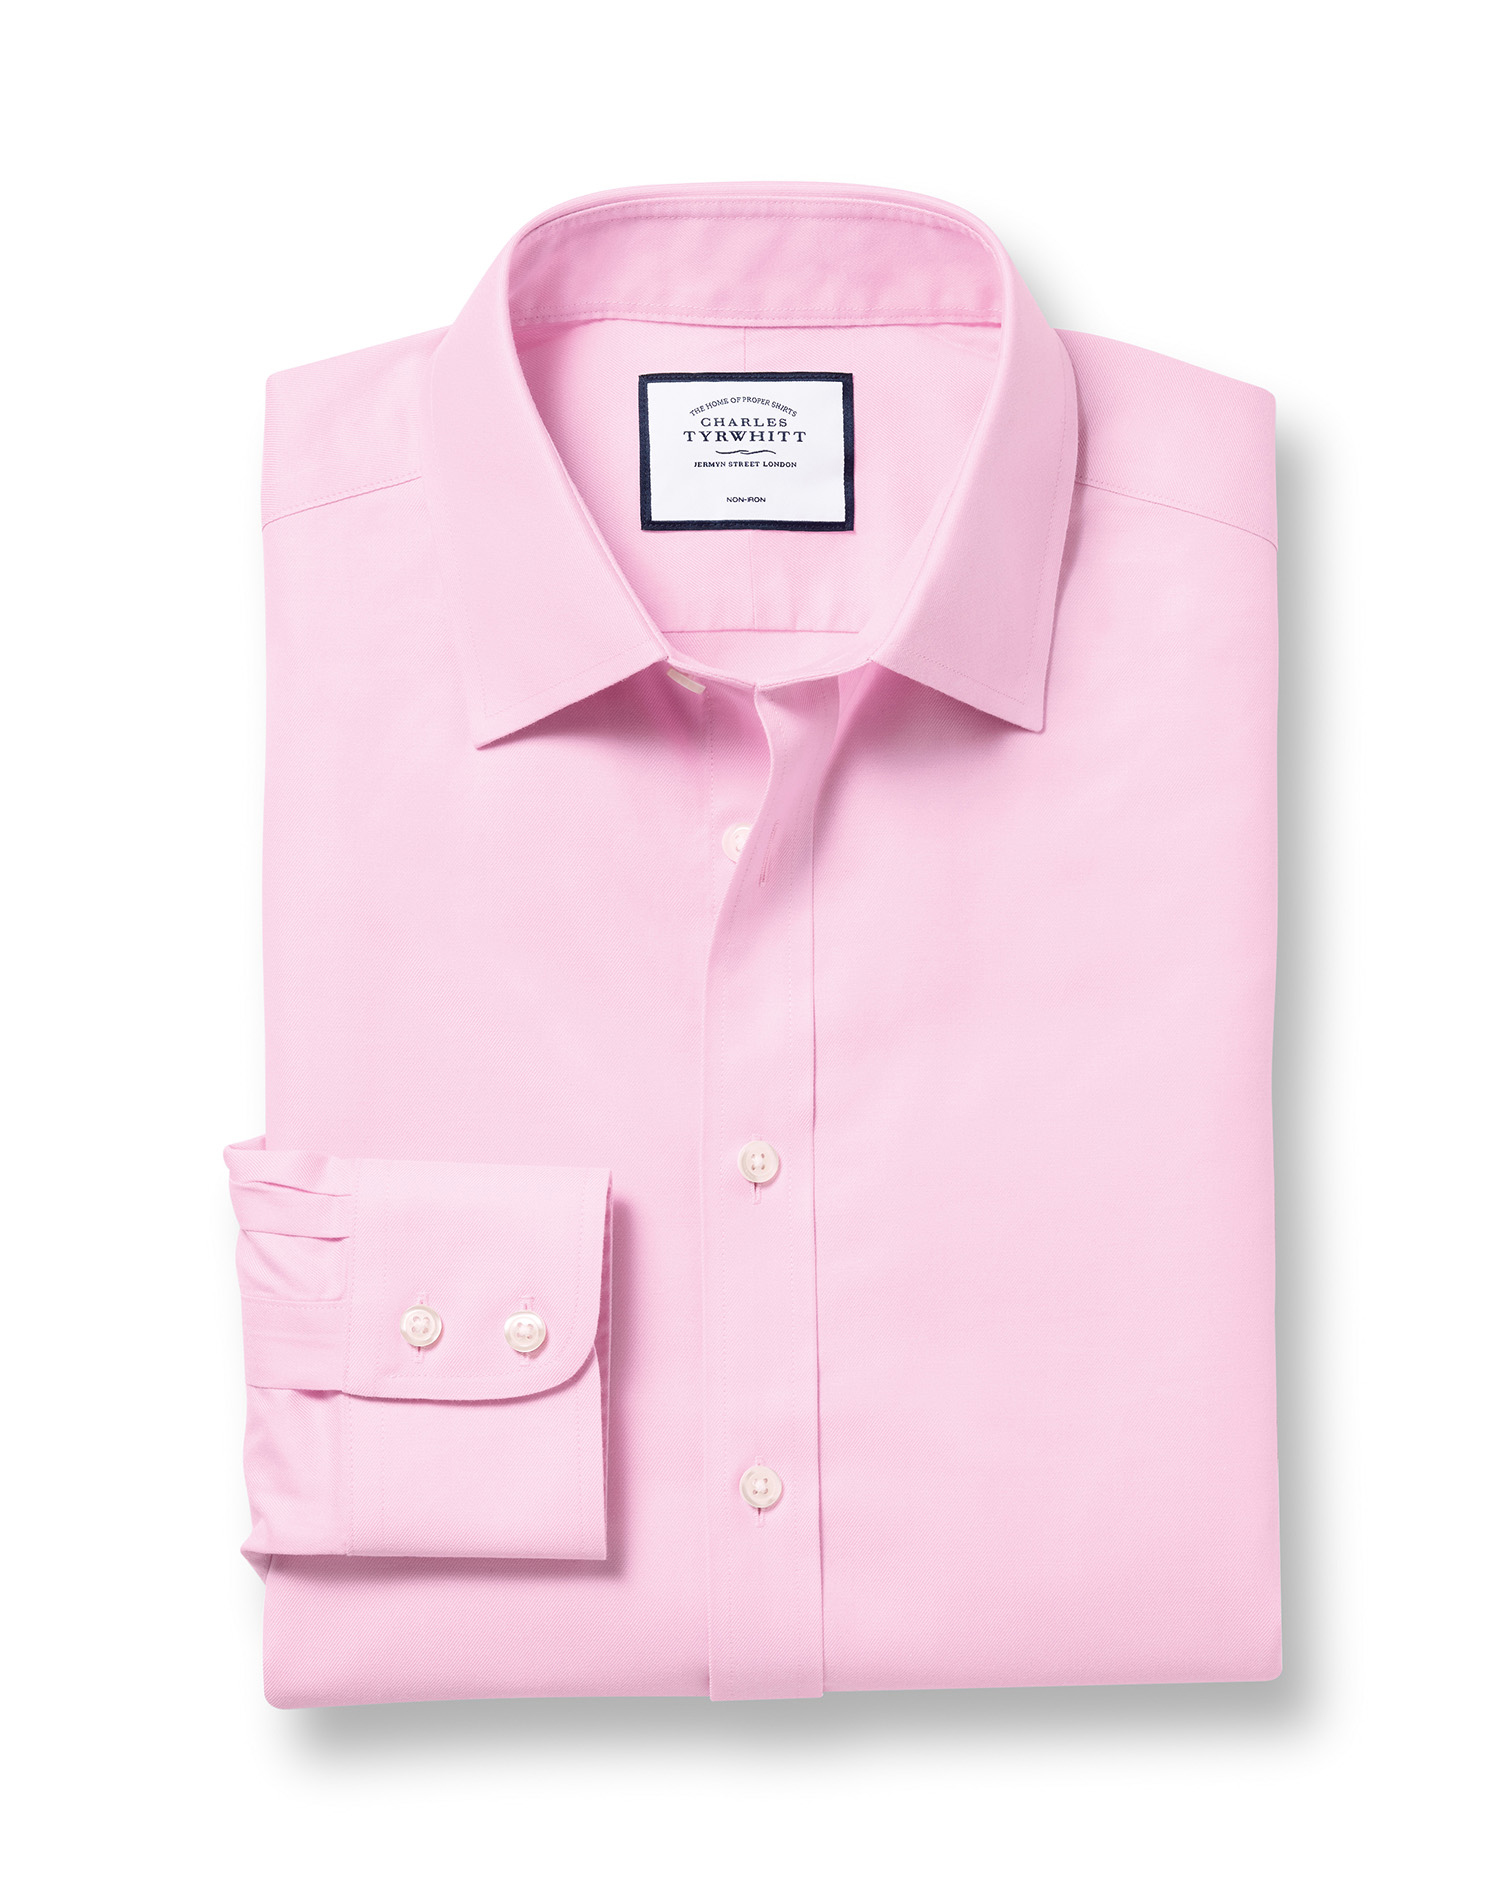 Slim Fit Pink Non-Iron Twill Cotton Formal Shirt Single Cuff Size 17.5/35 by Charles Tyrwhitt